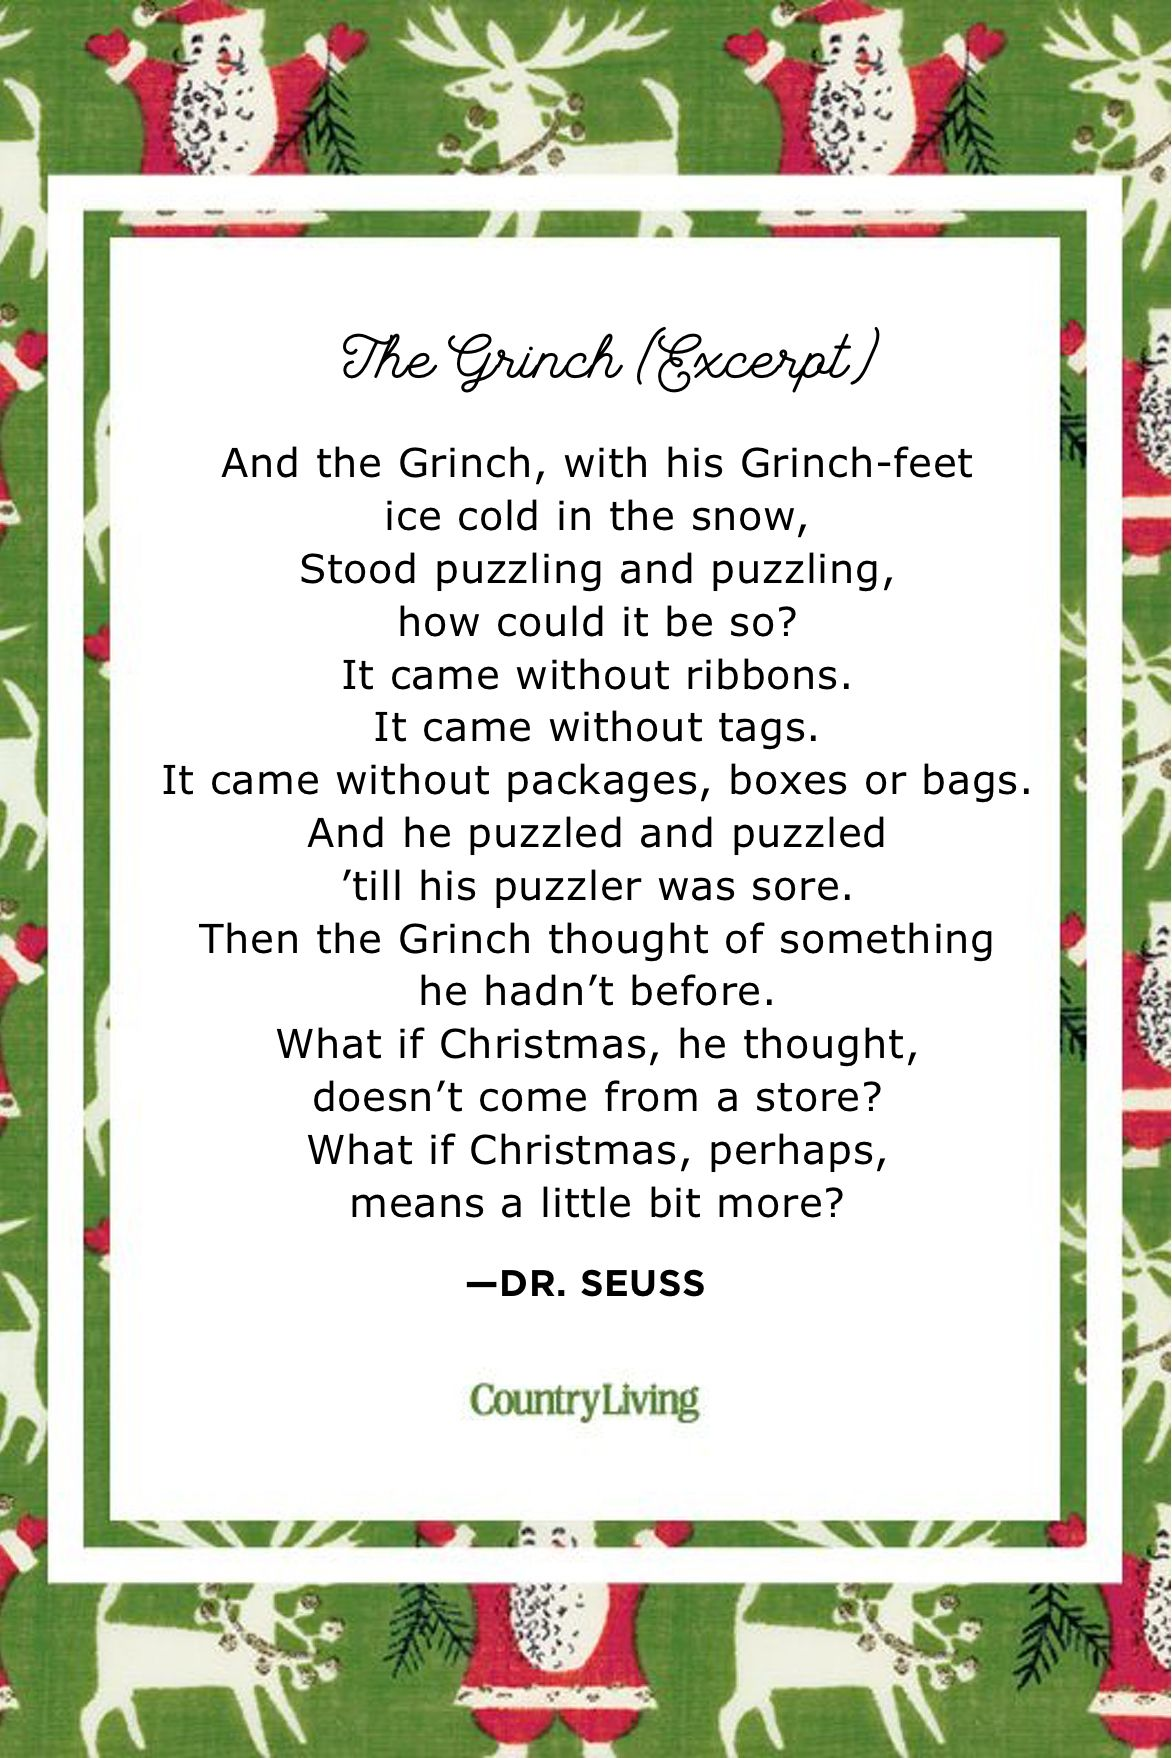 18 Best Christmas Poems For Kids Christmas Poems To Read With Kids